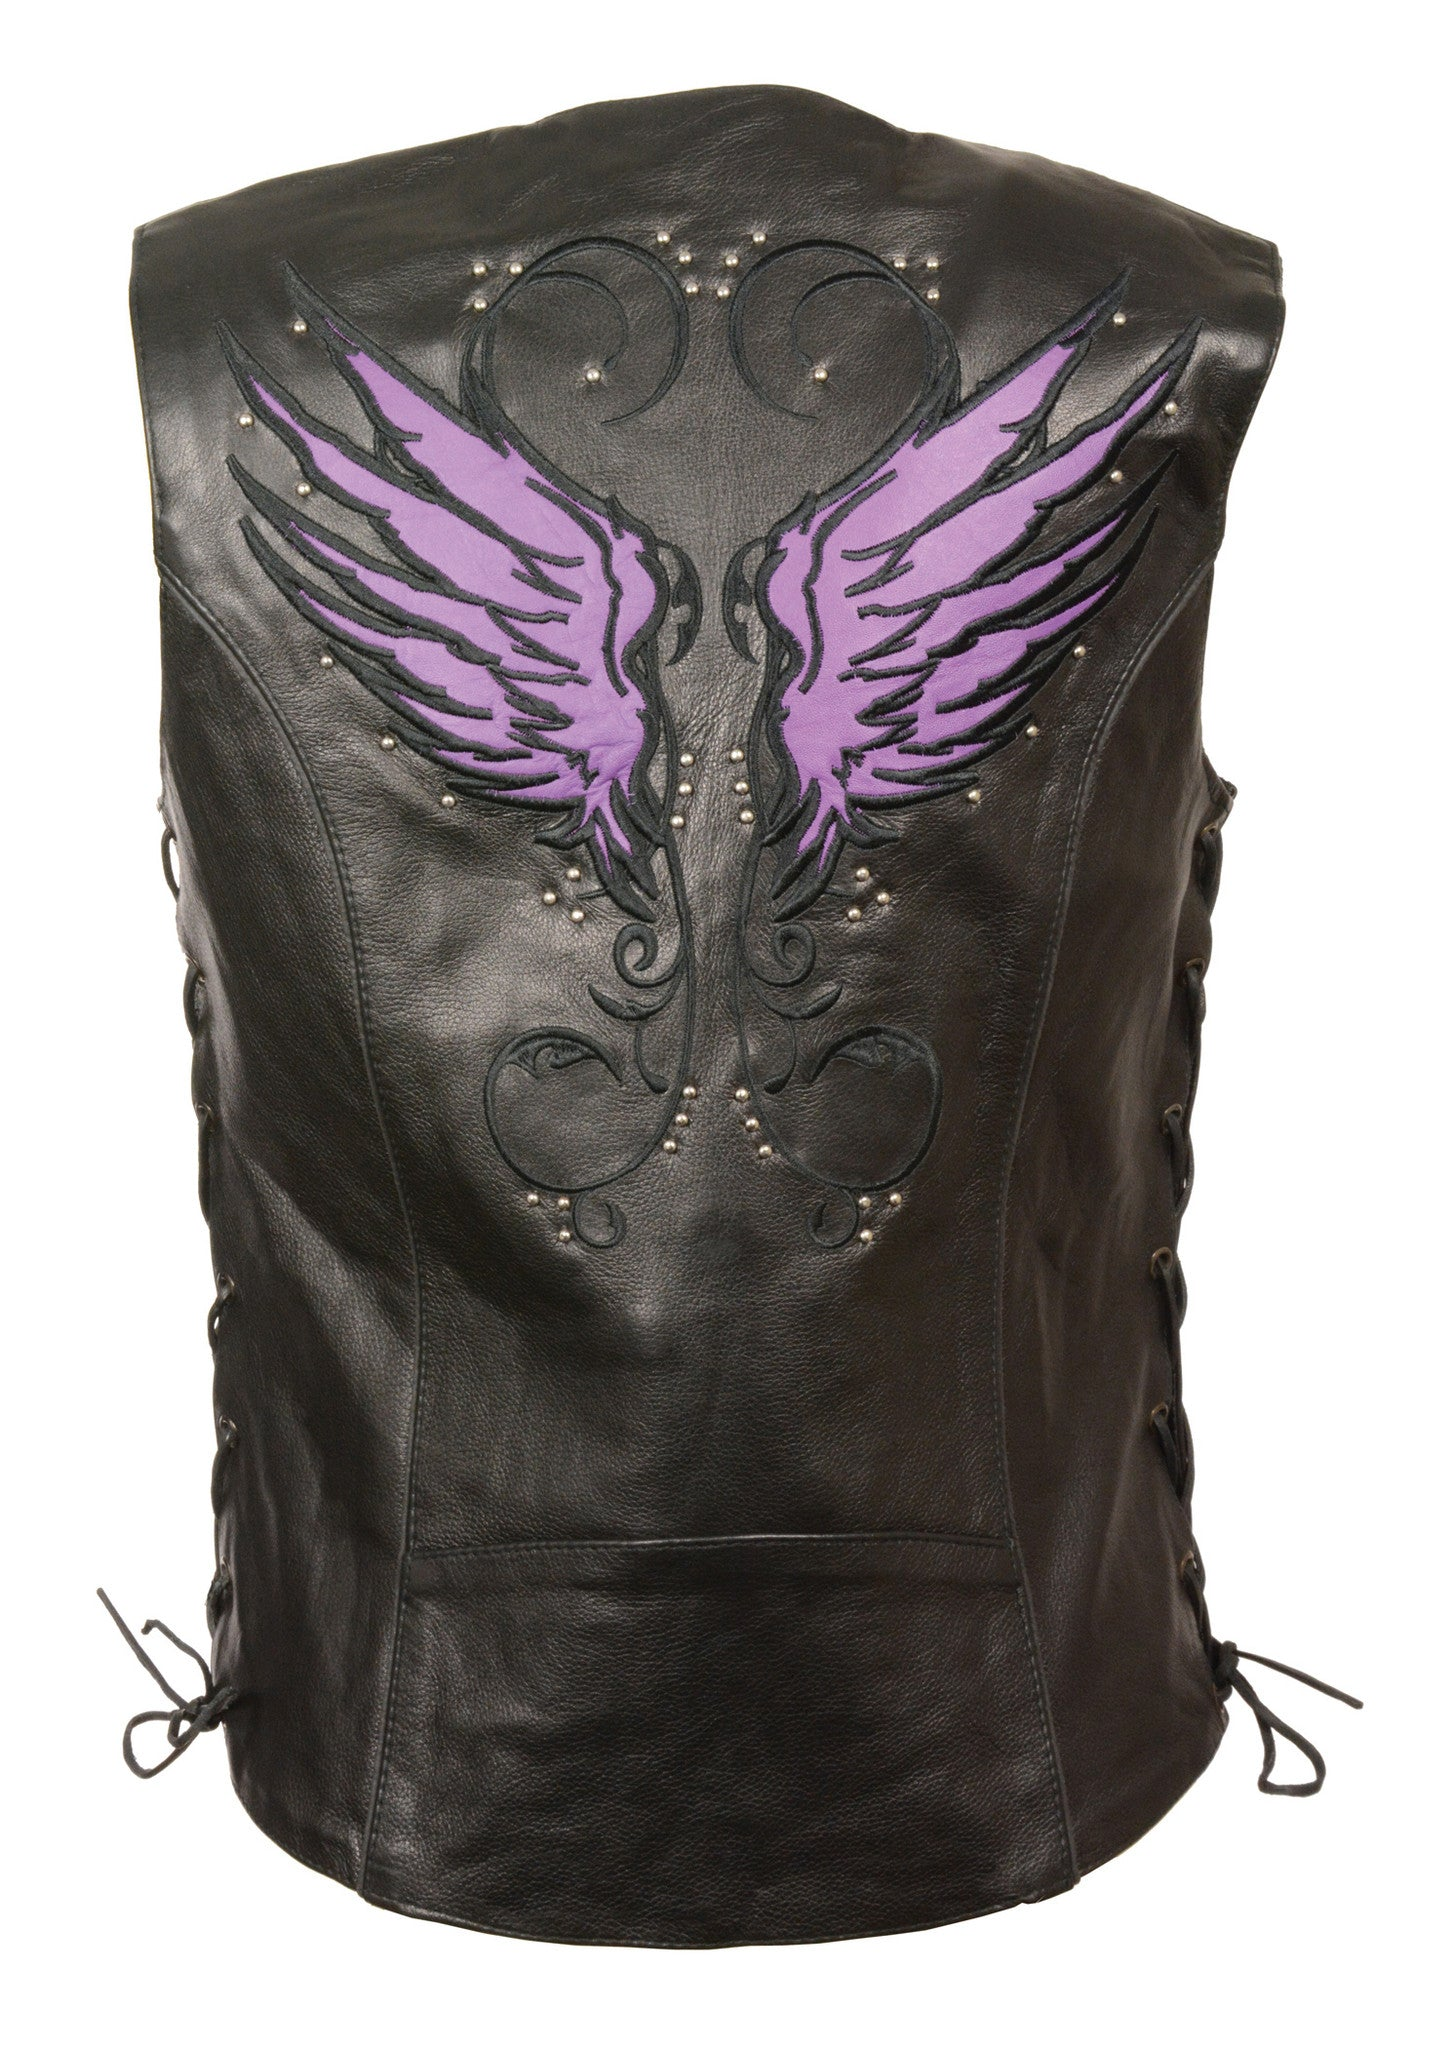 WOMEN'S RIDING LEATHER VEST W/ PURPLE WINGS DETAILING